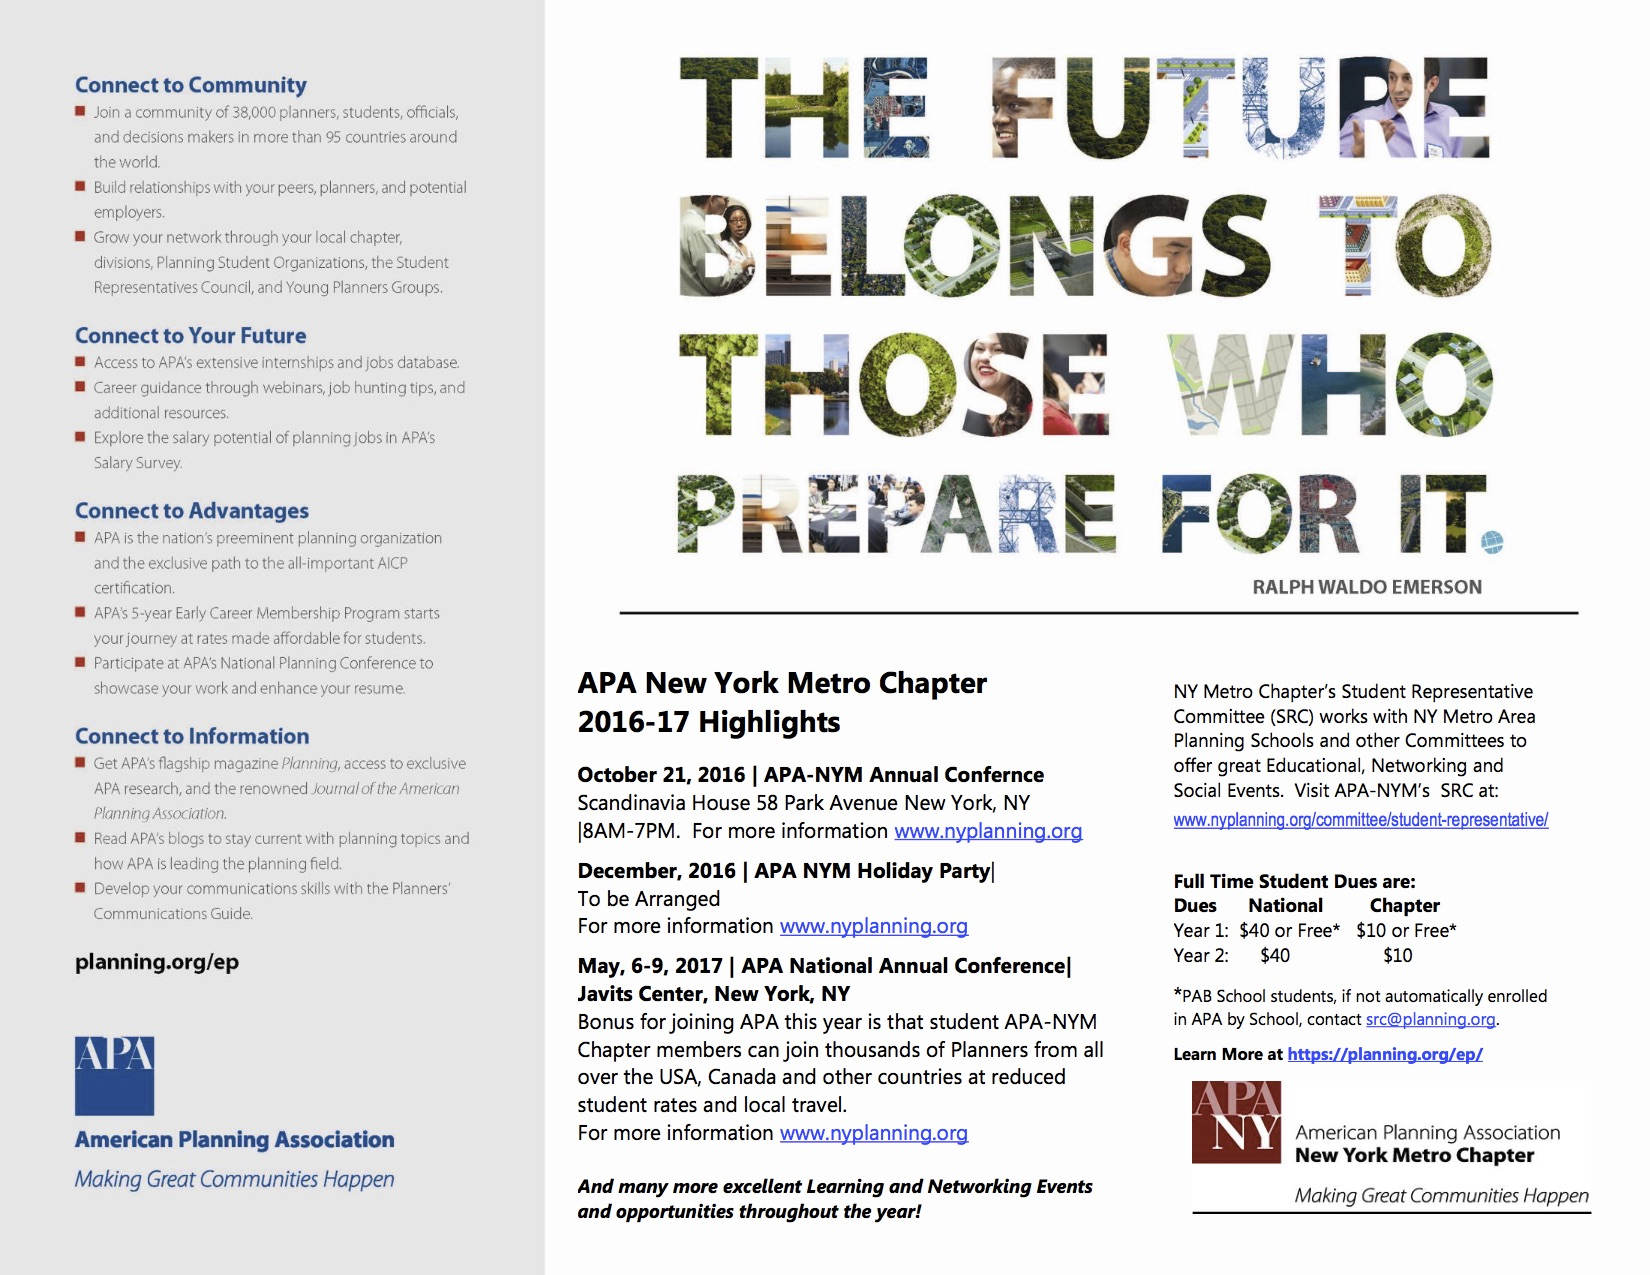 Discover Apa Nym Resources For New Planners And Graduate Students In